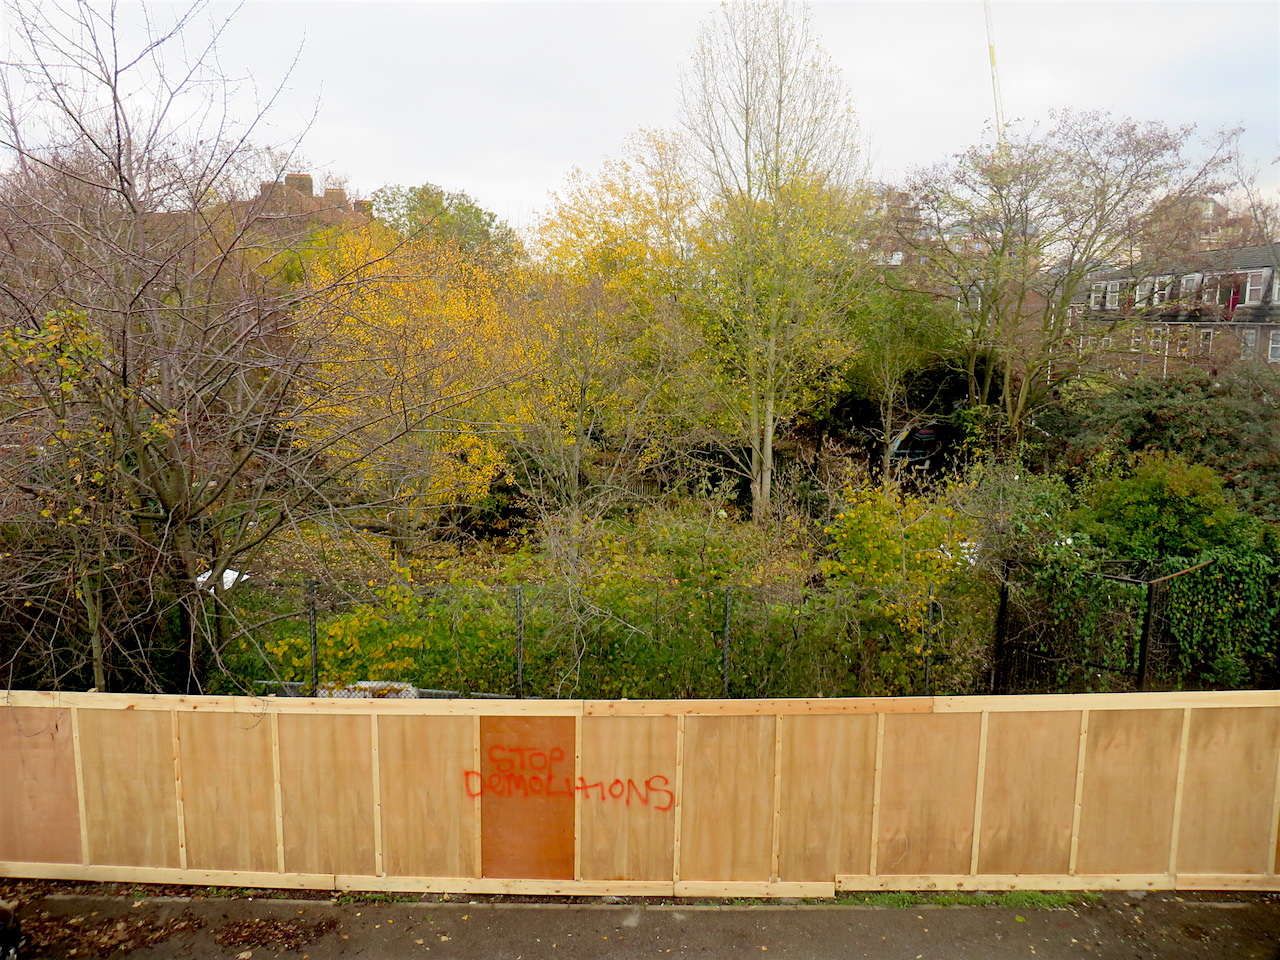 The Old Tidemill Wildlife Garden as viewed from the top balcony of Reginald House in Deptford on November 21, 2018 (Photo: Andy Worthington).